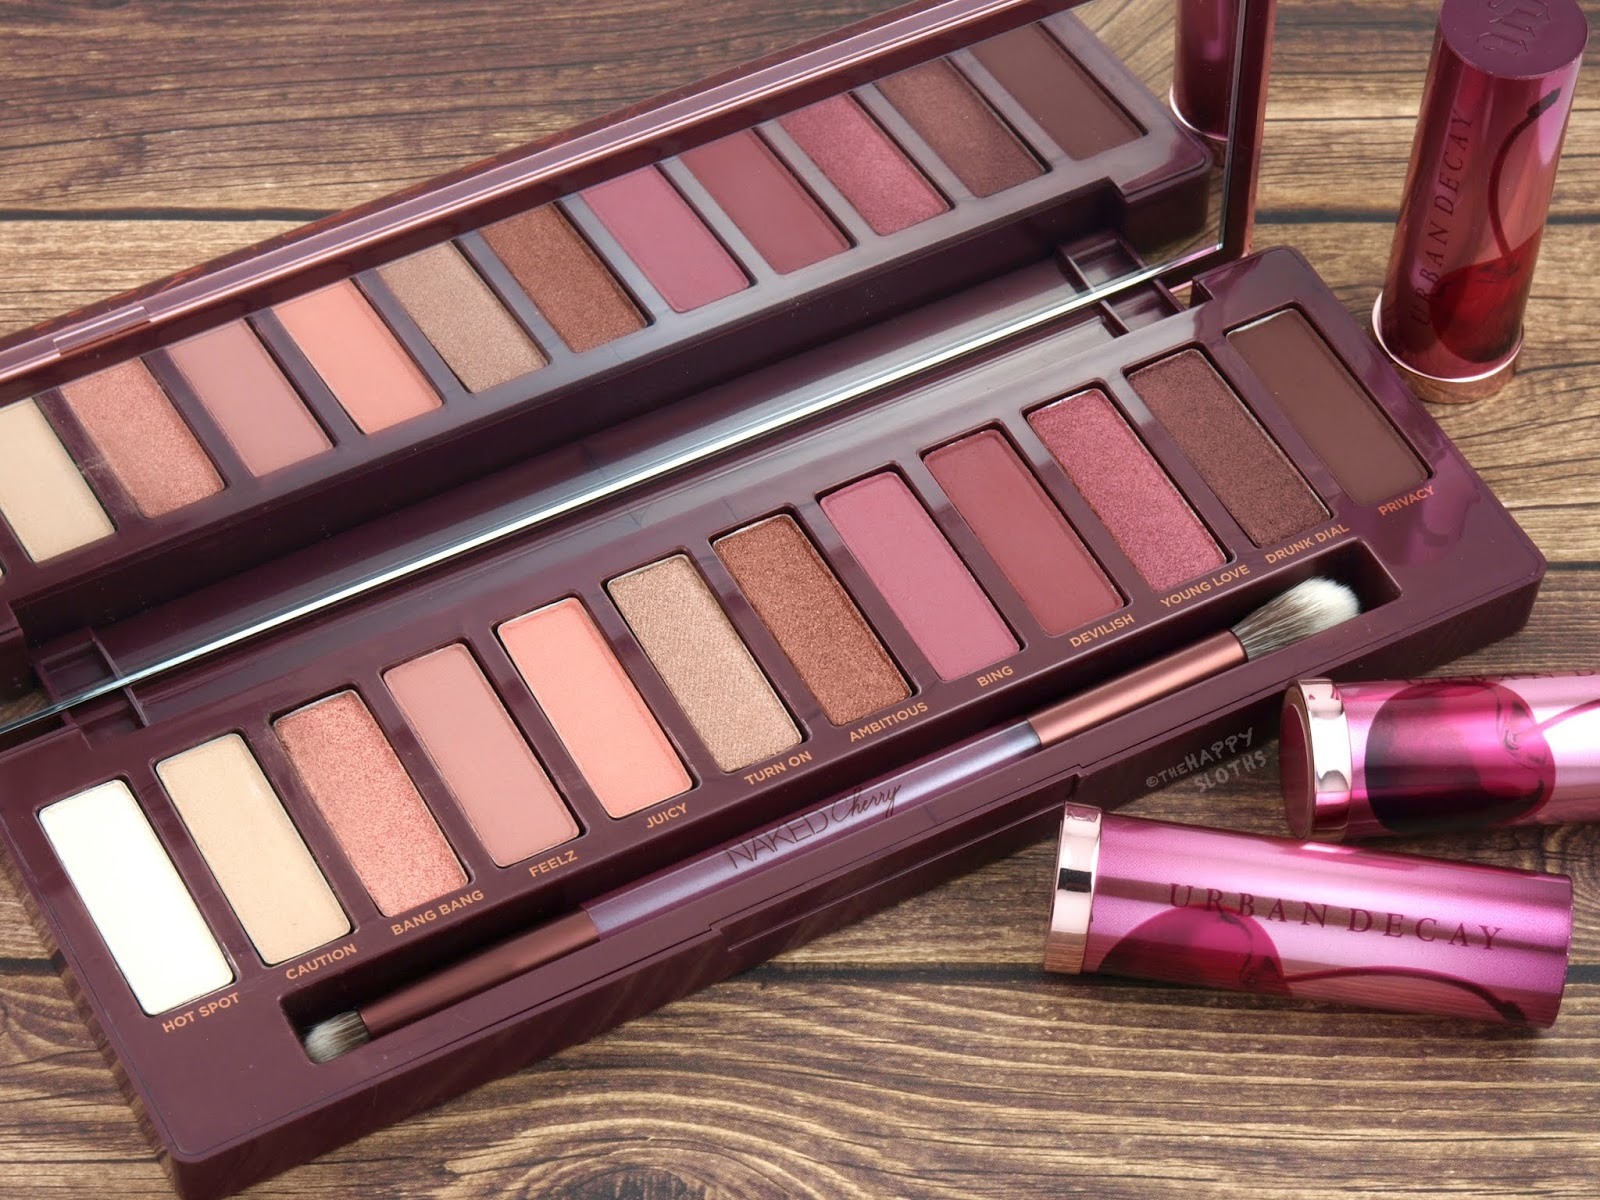 Urban Decay | Naked Cherry Eyeshadow Palette: Review and Swatches